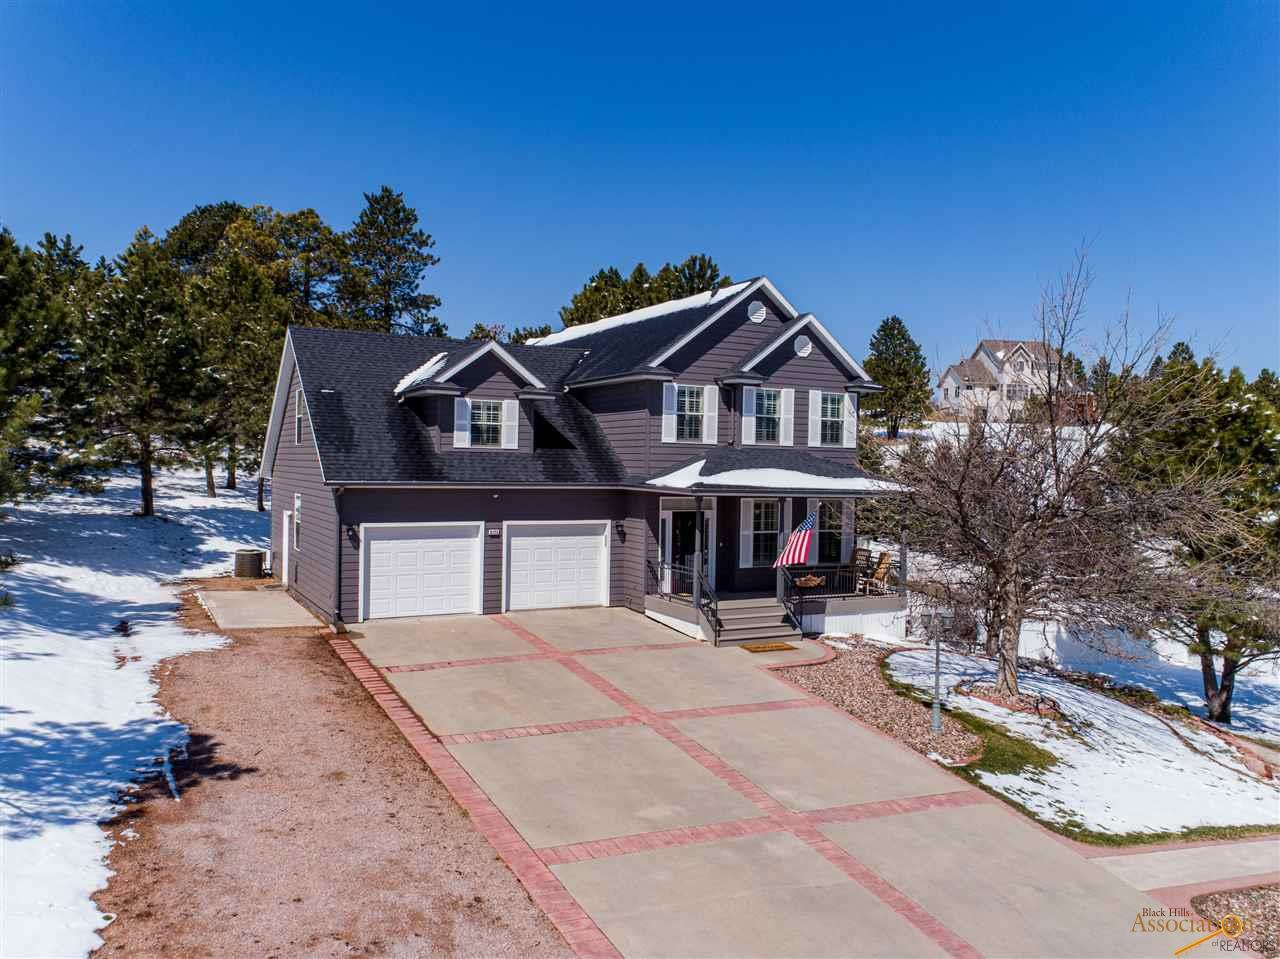 Listed with TJ and Angelica Wojtanowicz at Black Hills Realty 605-863-1920. Beautiful two-story home, nestled on an acre in a quiet cul-de-sac. This home features 5 bedrooms, 3.5 bathrooms, and a 2 car garage with RV parking. There's so much natural light with big windows throughout.  A great spot for getting together, the bright white kitchen with granite countertops walks into a large living room with gas fireplace. Main level also has a formal dining room, plus breakfast dining area, and main level laundry room. Upstairs you will find a master bedroom en-suite with walk-in closet, bedroom with large walk in closet, and a third bedroom with bathroom. The lower level has a large family room with walkout to side patio, and bedroom with bathroom. Great outdoor space with a big fenced yard surrounded by trees. Call today to view!